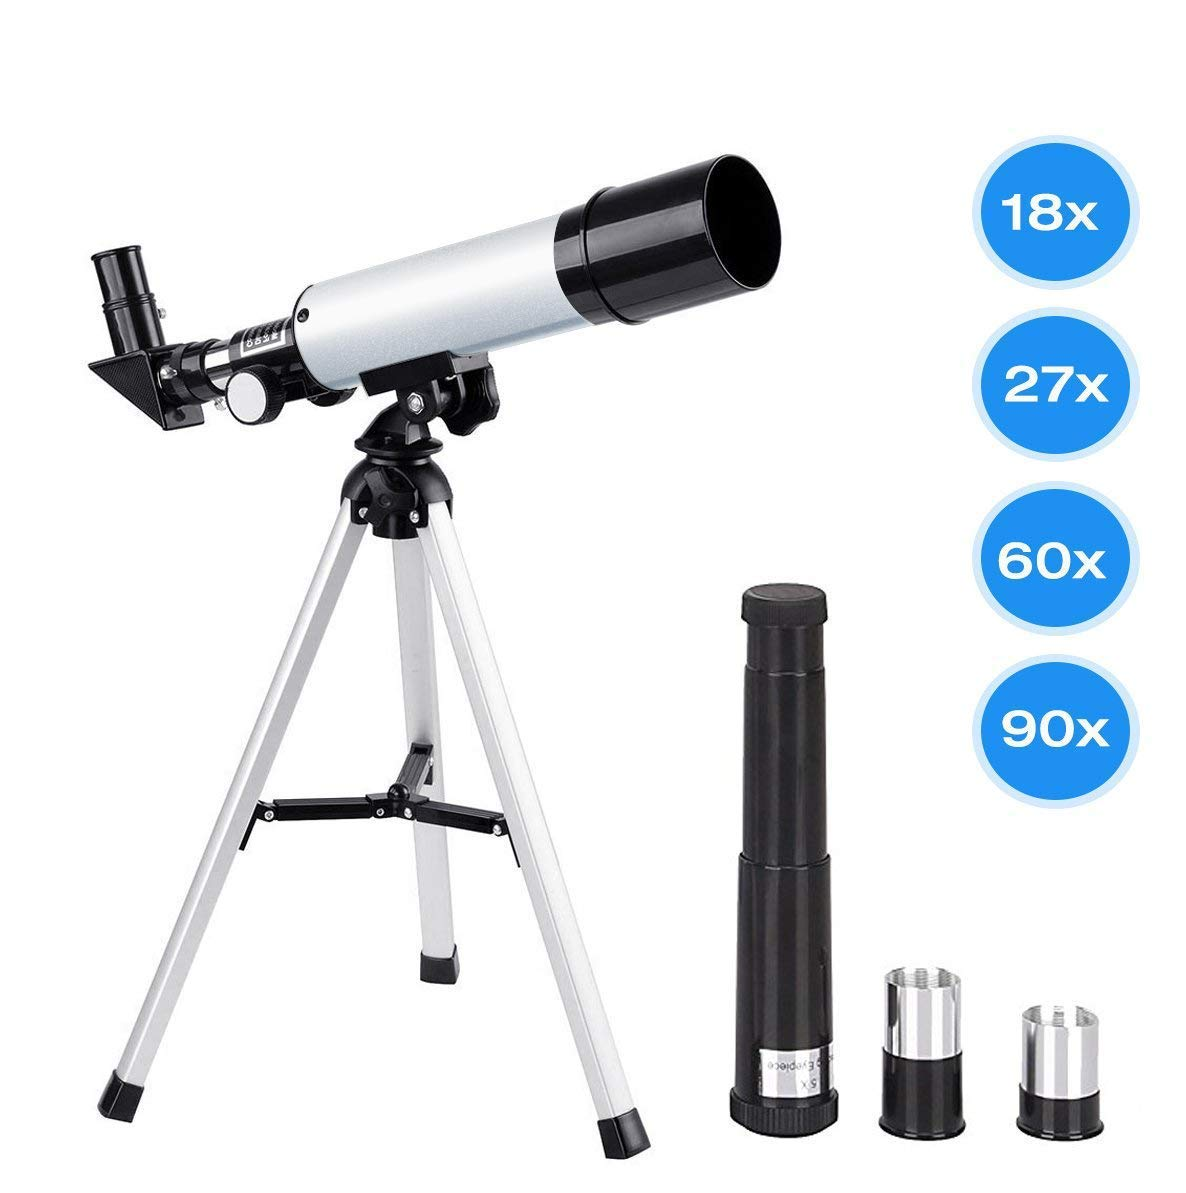 Kids Telescopes, Manfore 90X Science Astronomical Telescope with Tripod and 2 Magnification Eyepieces, Kids Science Telescope Educational Learning Toy for Sky Star Gazing & Birds Watching by Manfore